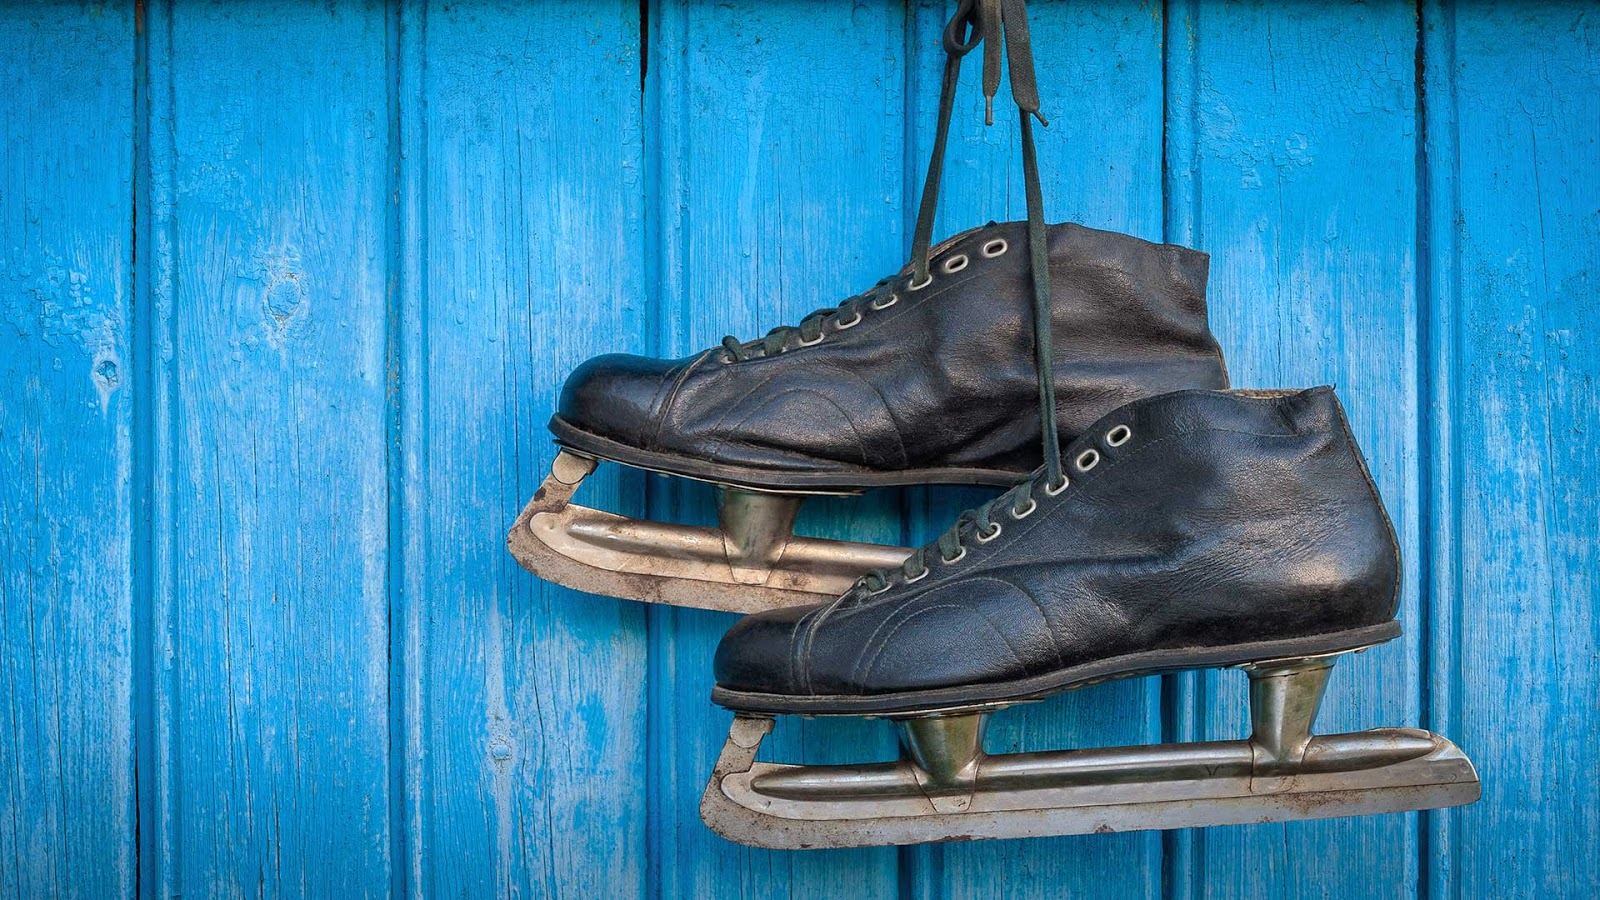 Old hockey skates hanging on a wall